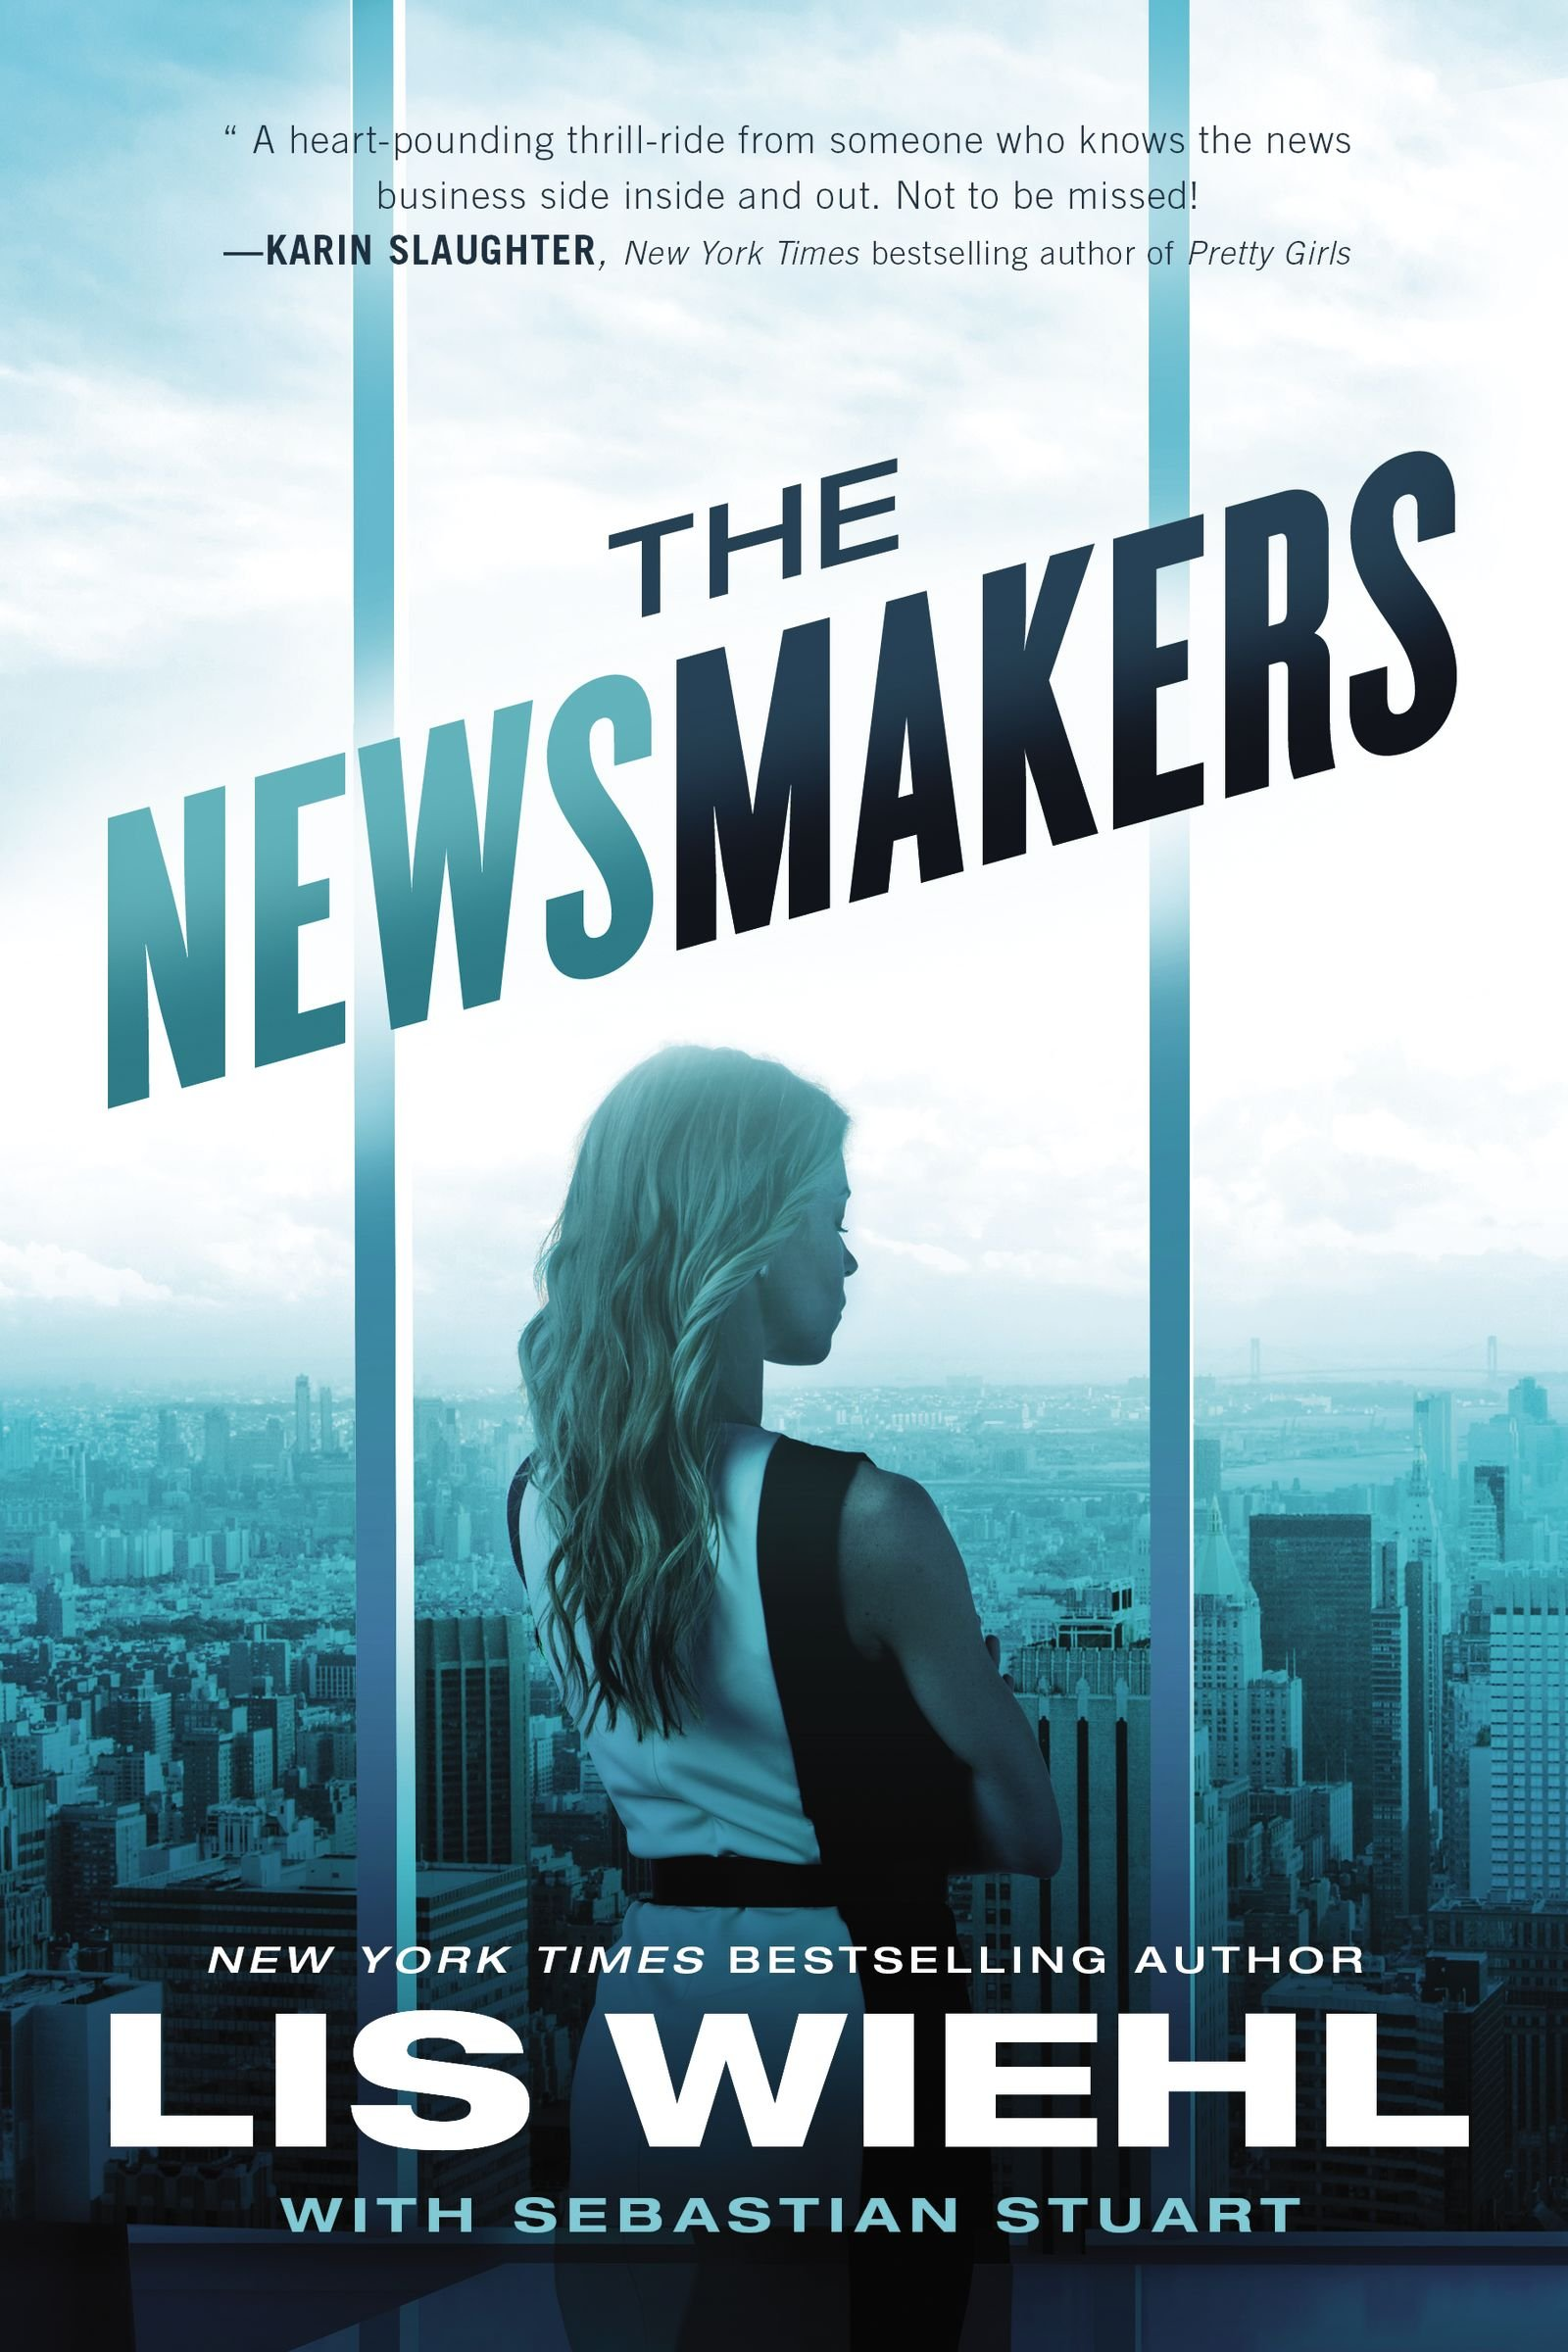 Book review: The Newsmakers